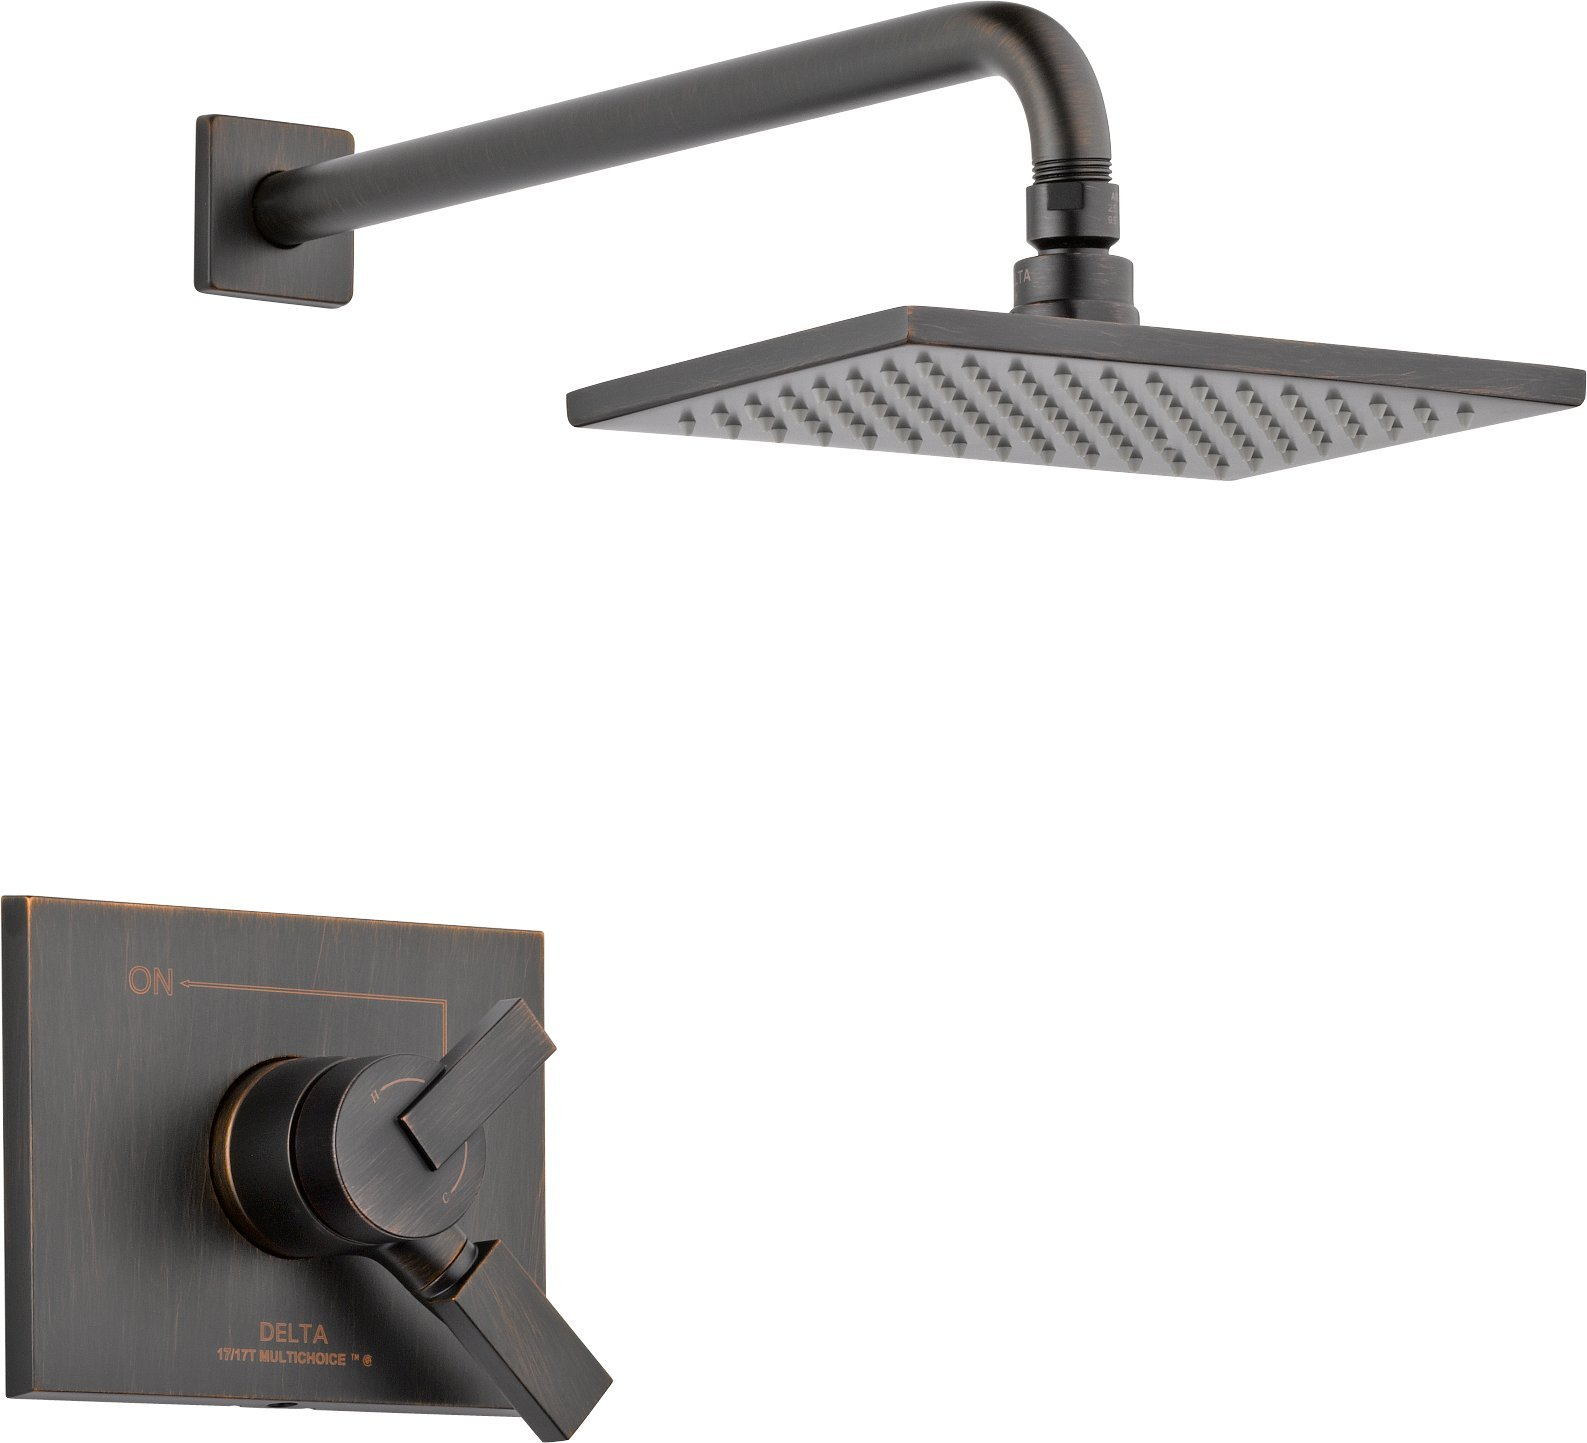 Delta Faucet T17253-RB Vero Monitor 17 Series Shower Trim, Venetian Bronze by DELTA FAUCET